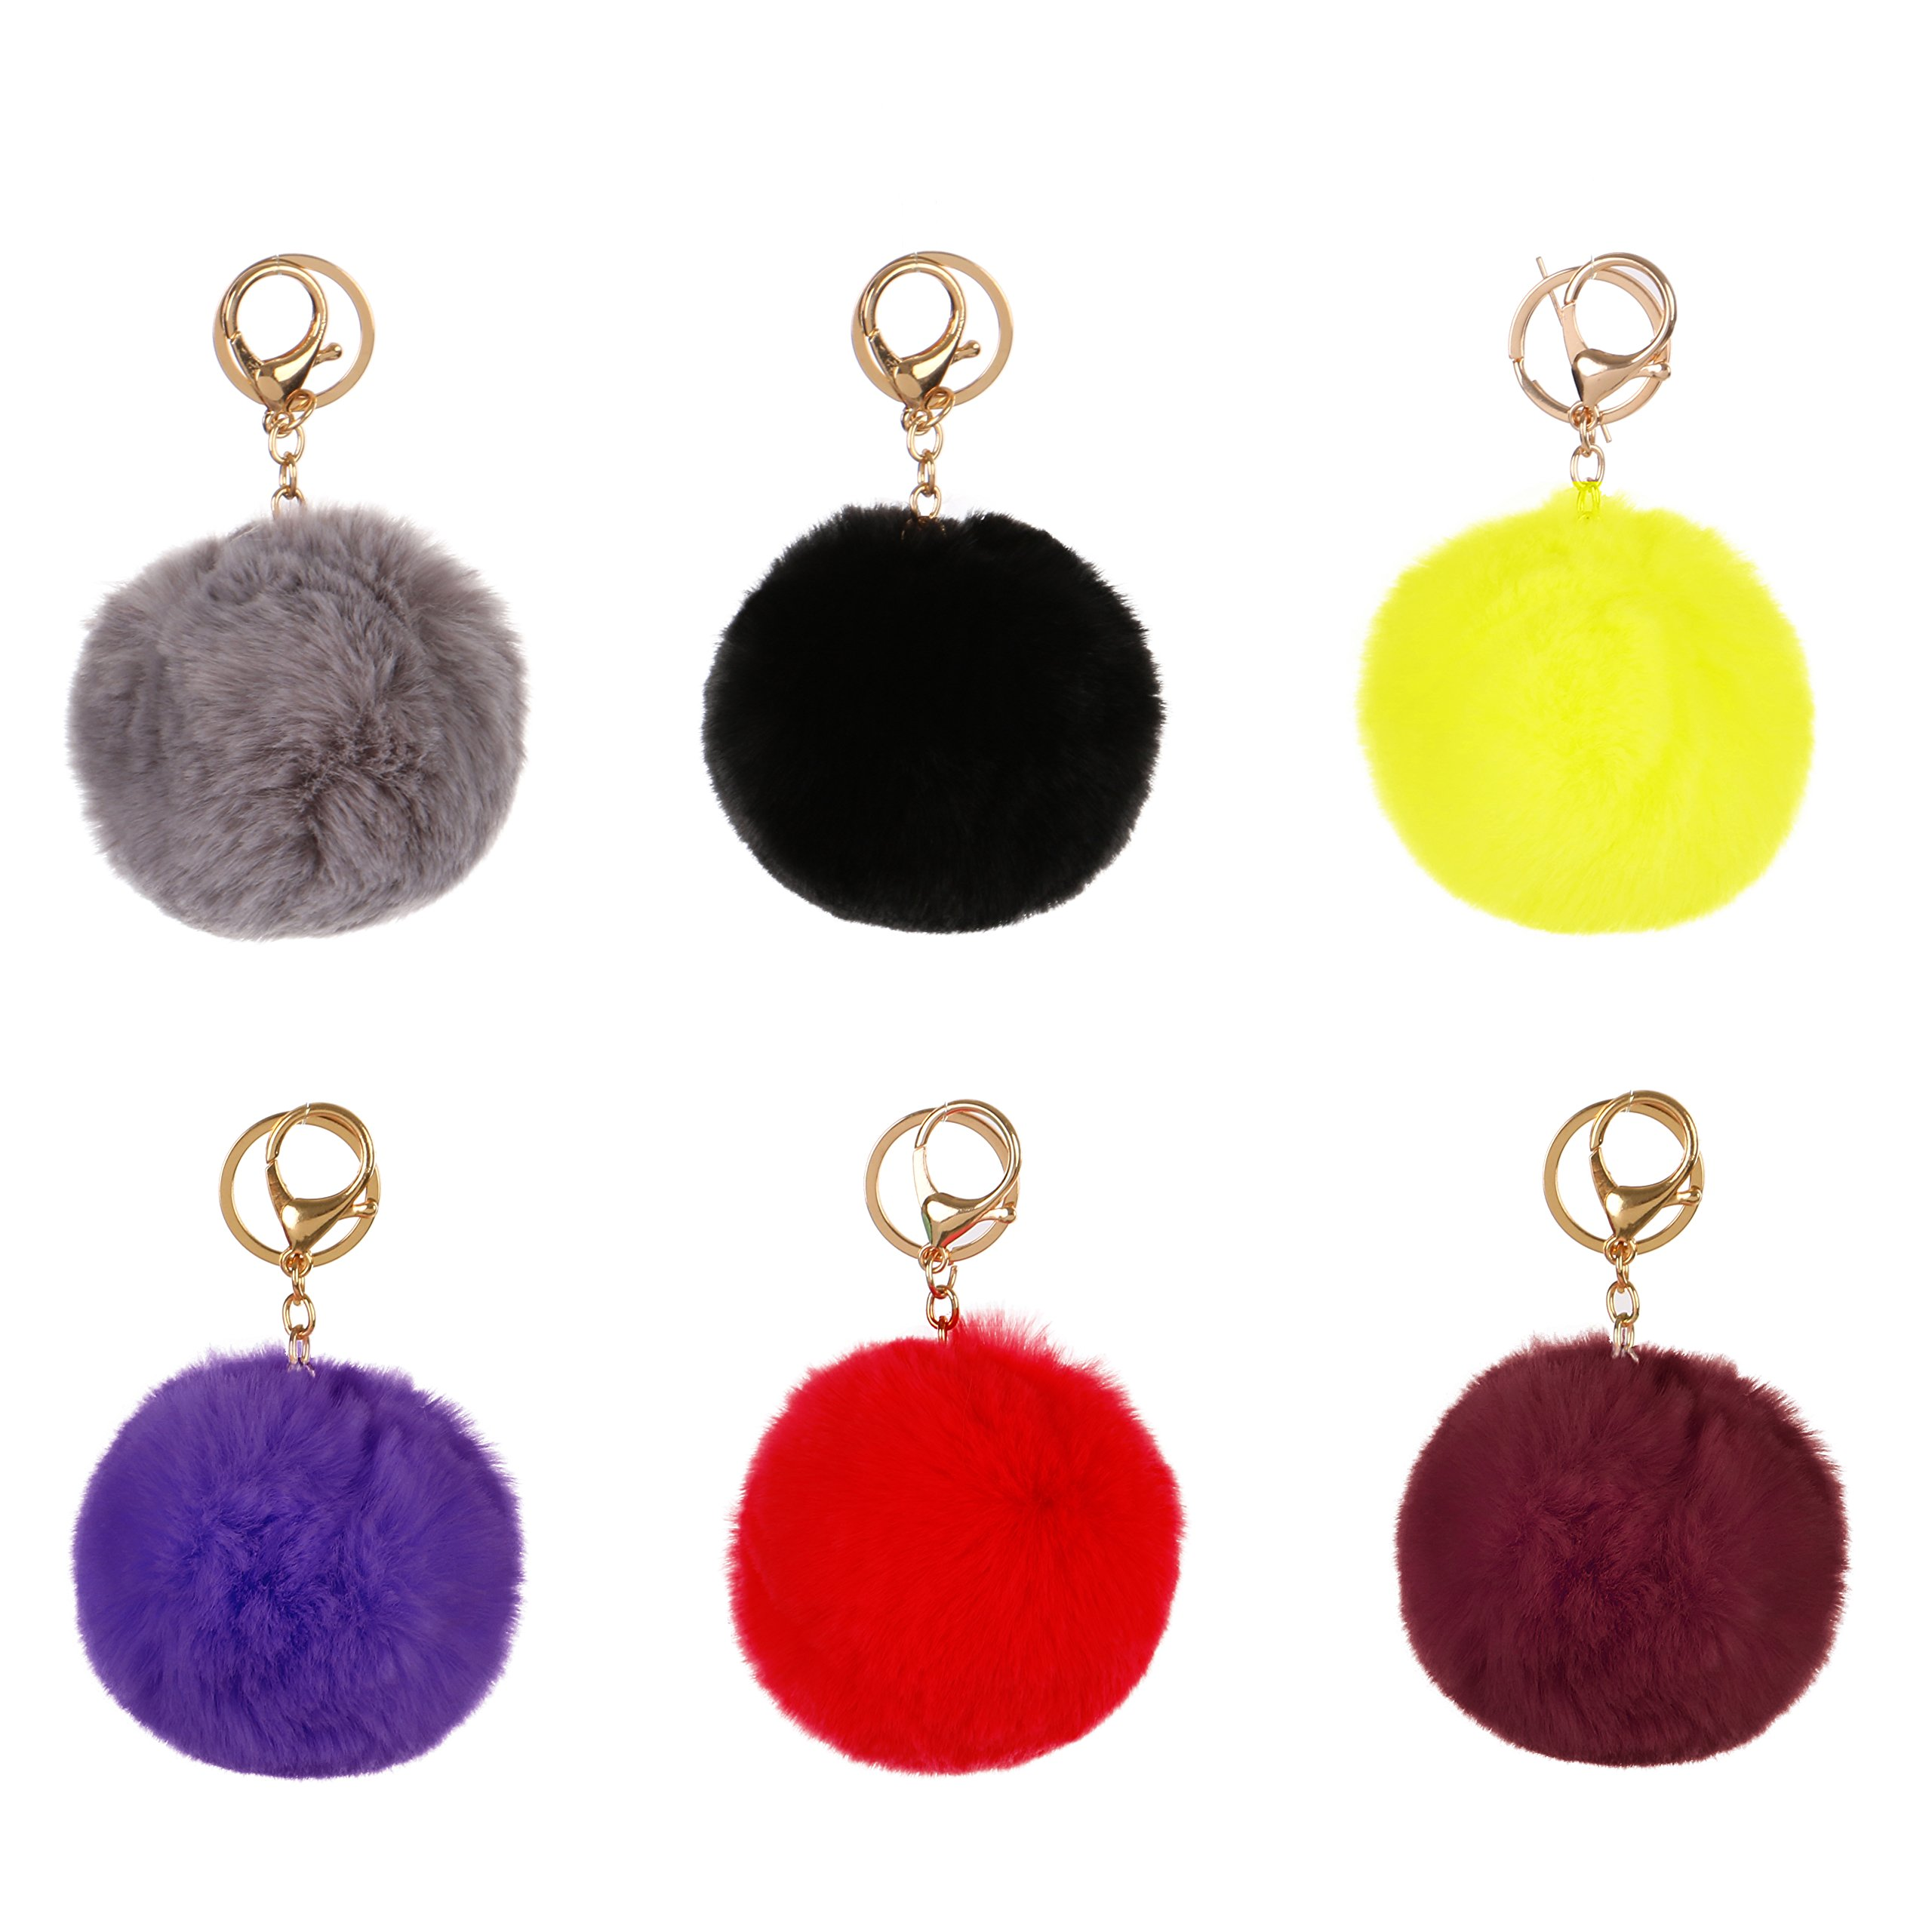 RufnTop 6 PCS PomPom KeyChain Gold Ring Car Key Ring or Handbag Accessories(6 PCS REGULAR MIX) by RufnTop (Image #1)